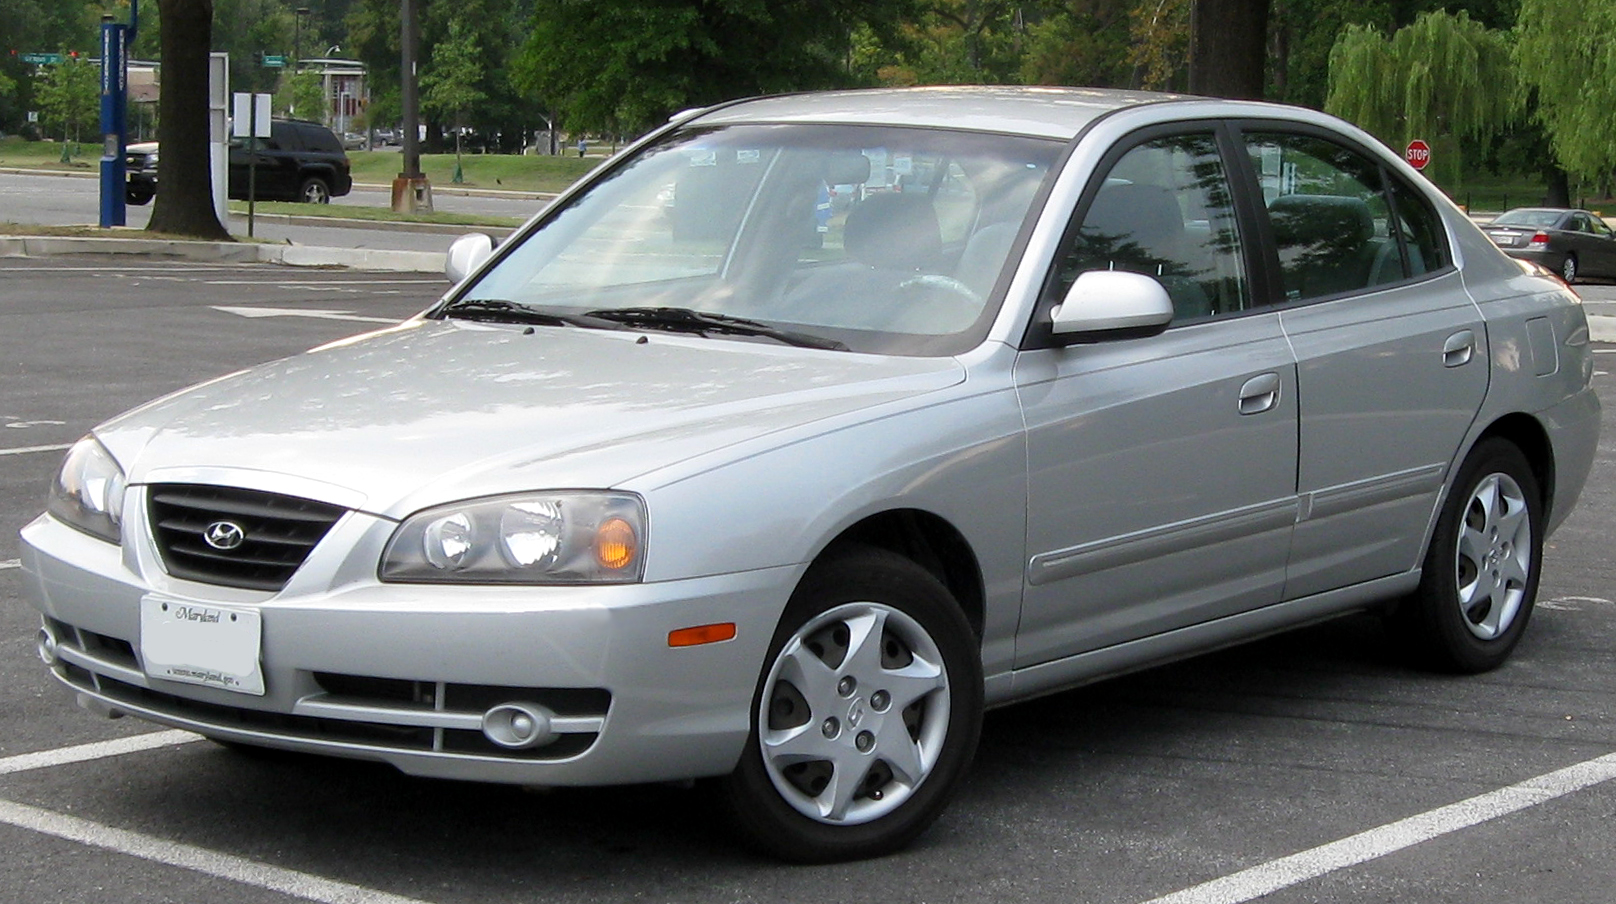 2004 Hyundai Elantra Information And Photos Zombiedrive